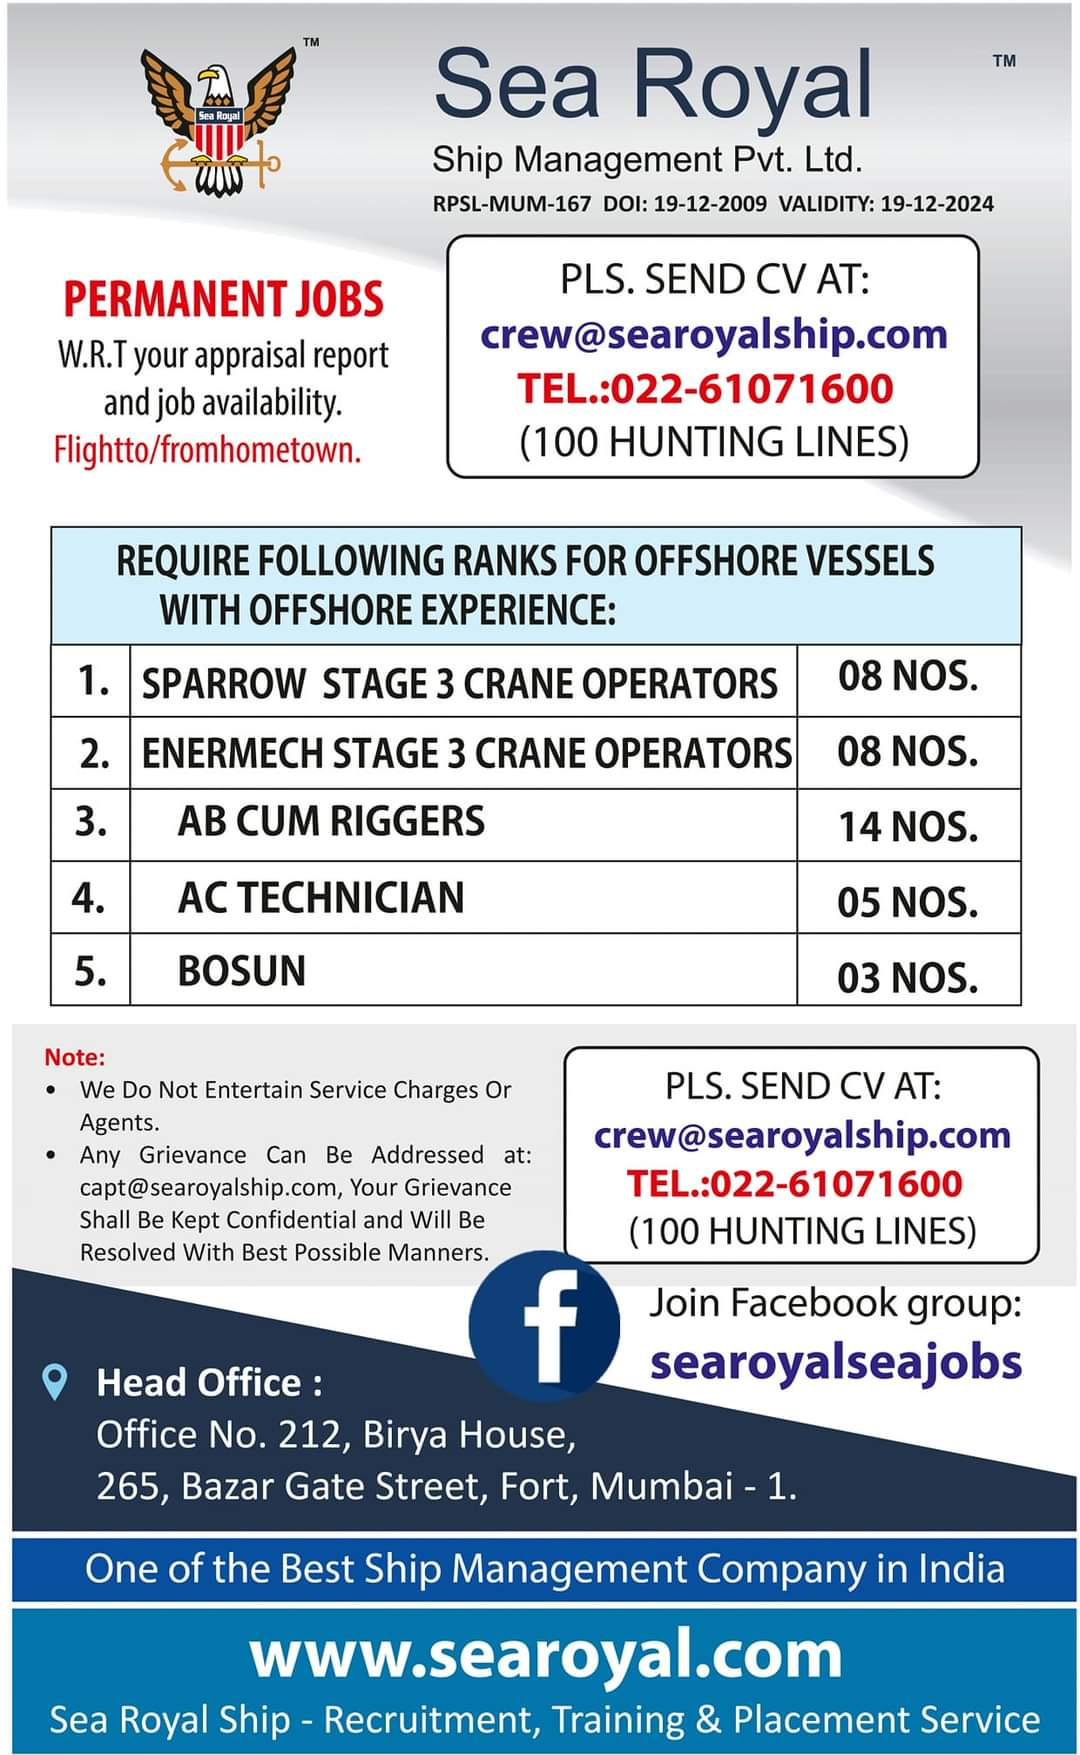 URGENTLY REQUIRED FOR THE SHIP MANAGEMENT COMPANY IN INDIA